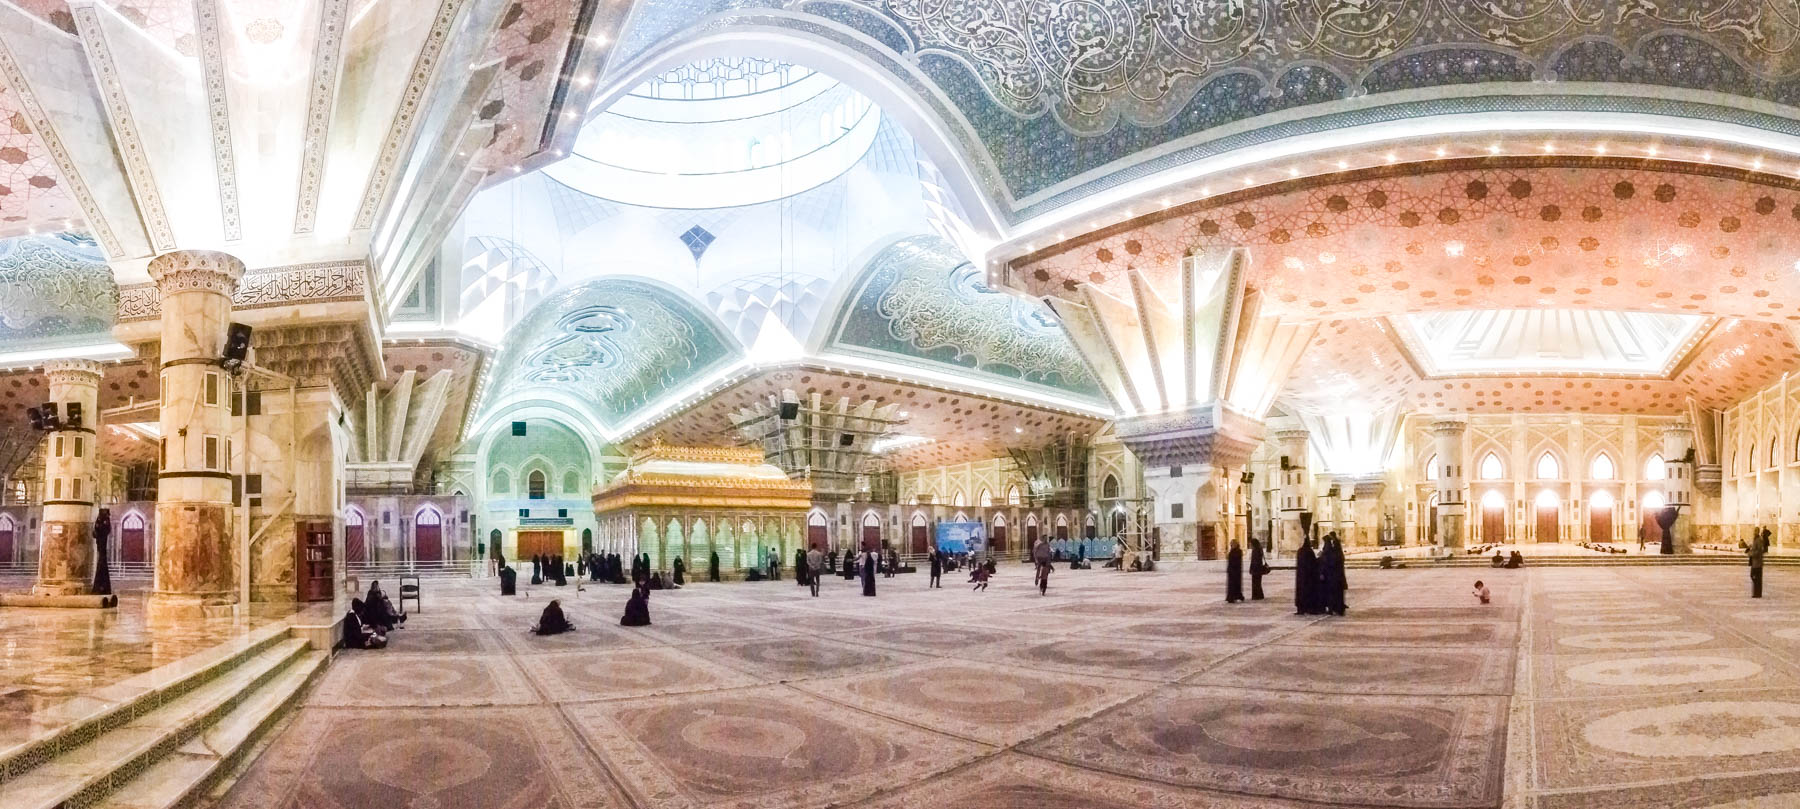 A mobile panorama of Imam Khomeini shrine in Tehran, Iran - Lost With Purpose